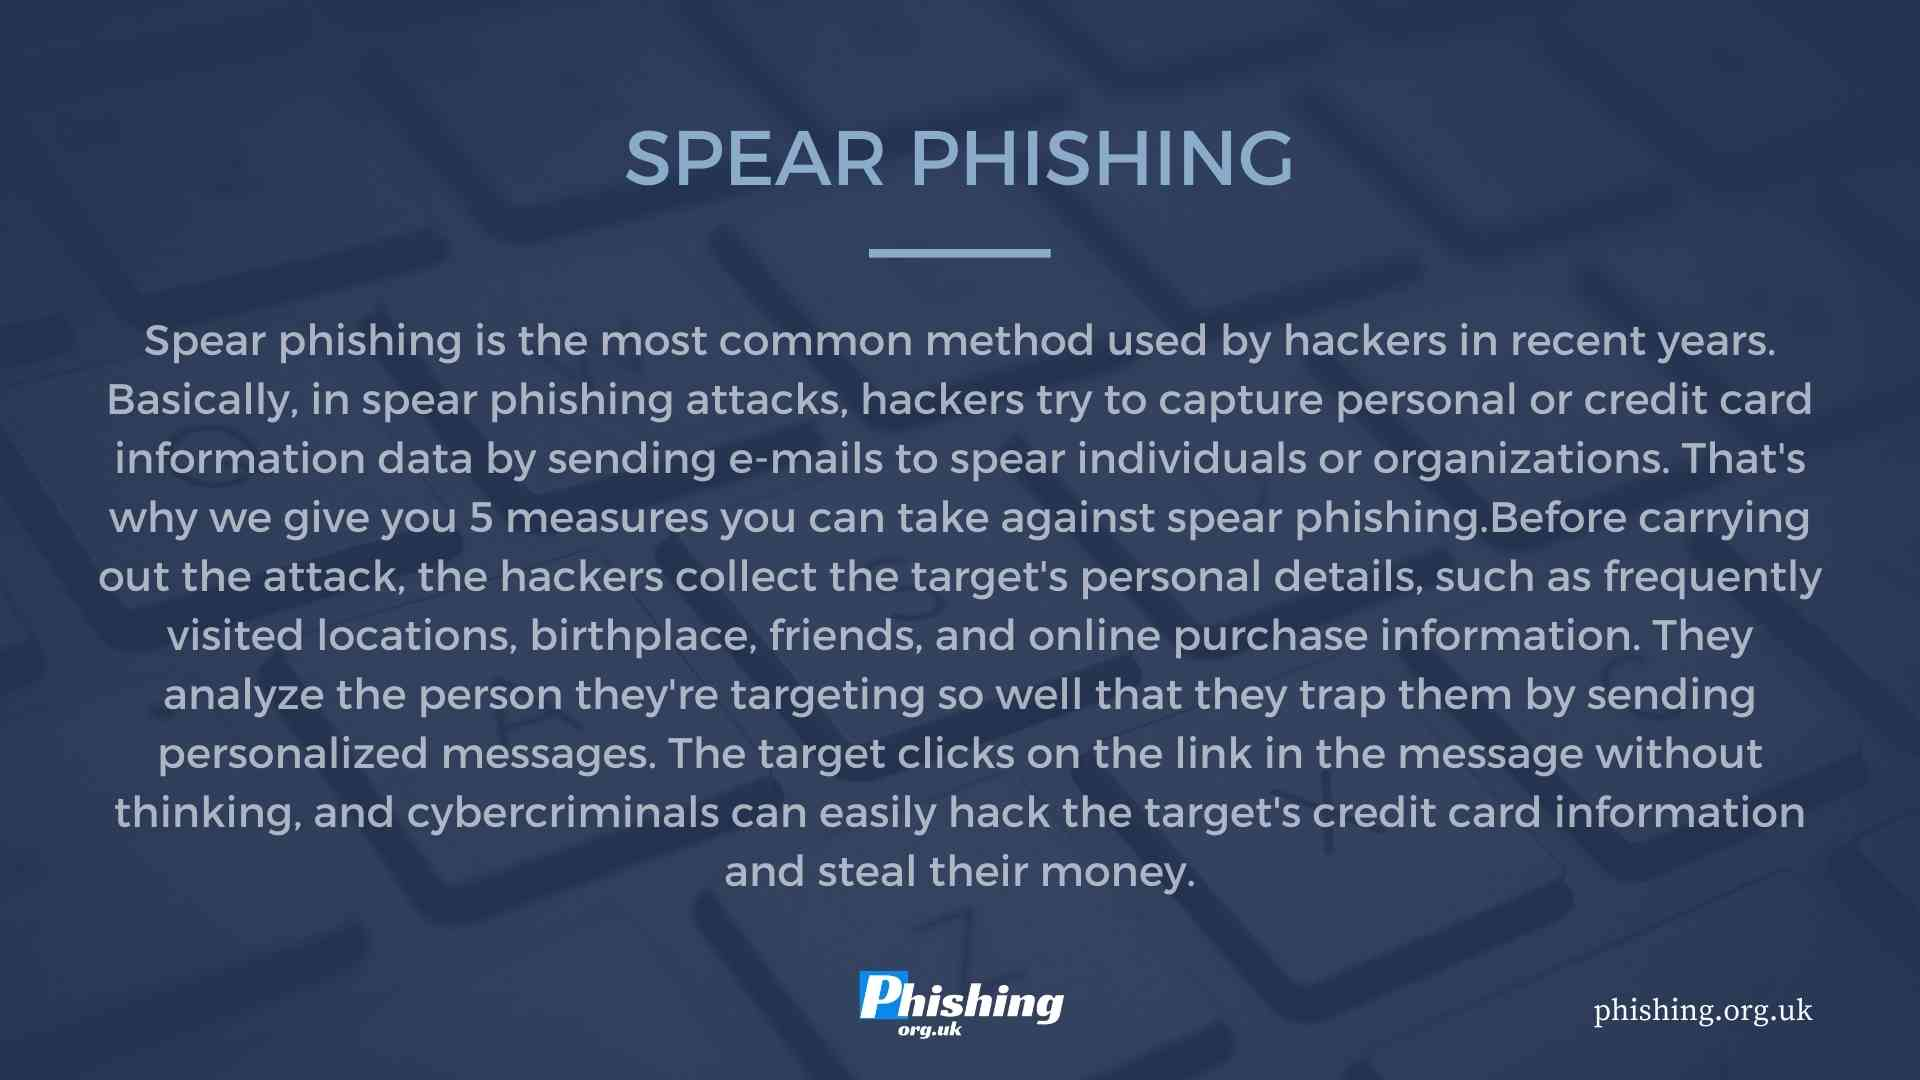 5 Measures You Can Take Against Spear Phishing